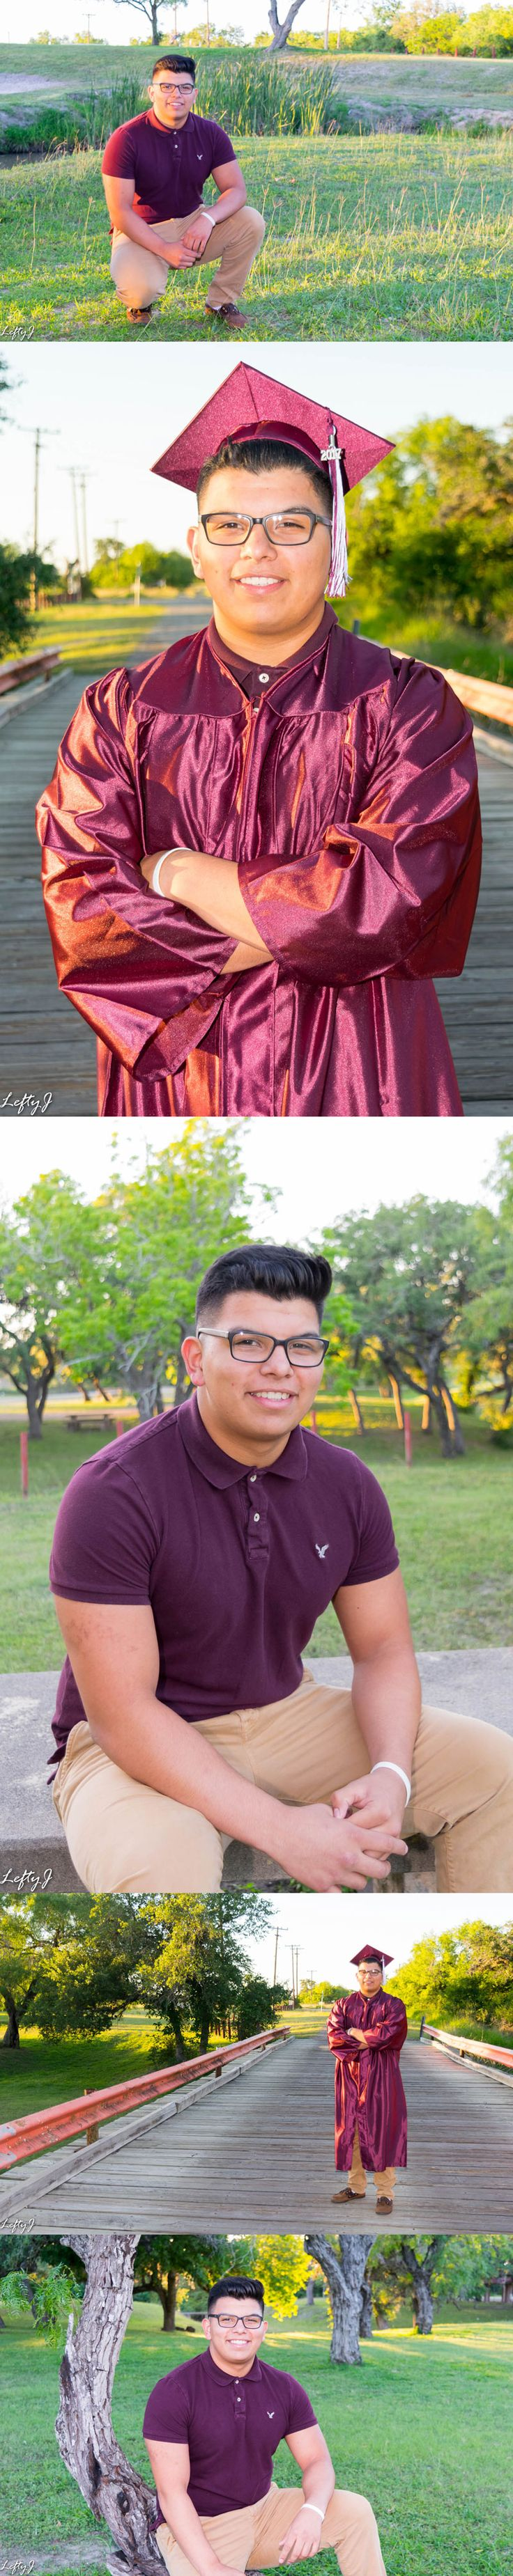 Reye came back for round two of senior photos! There's still time to book your session before graduation. http://leftyjphotography.com #corpuschristiphotography #corpuschristiphotograher #seniorpics #senior #classof2017 #sinton #sintonpirates